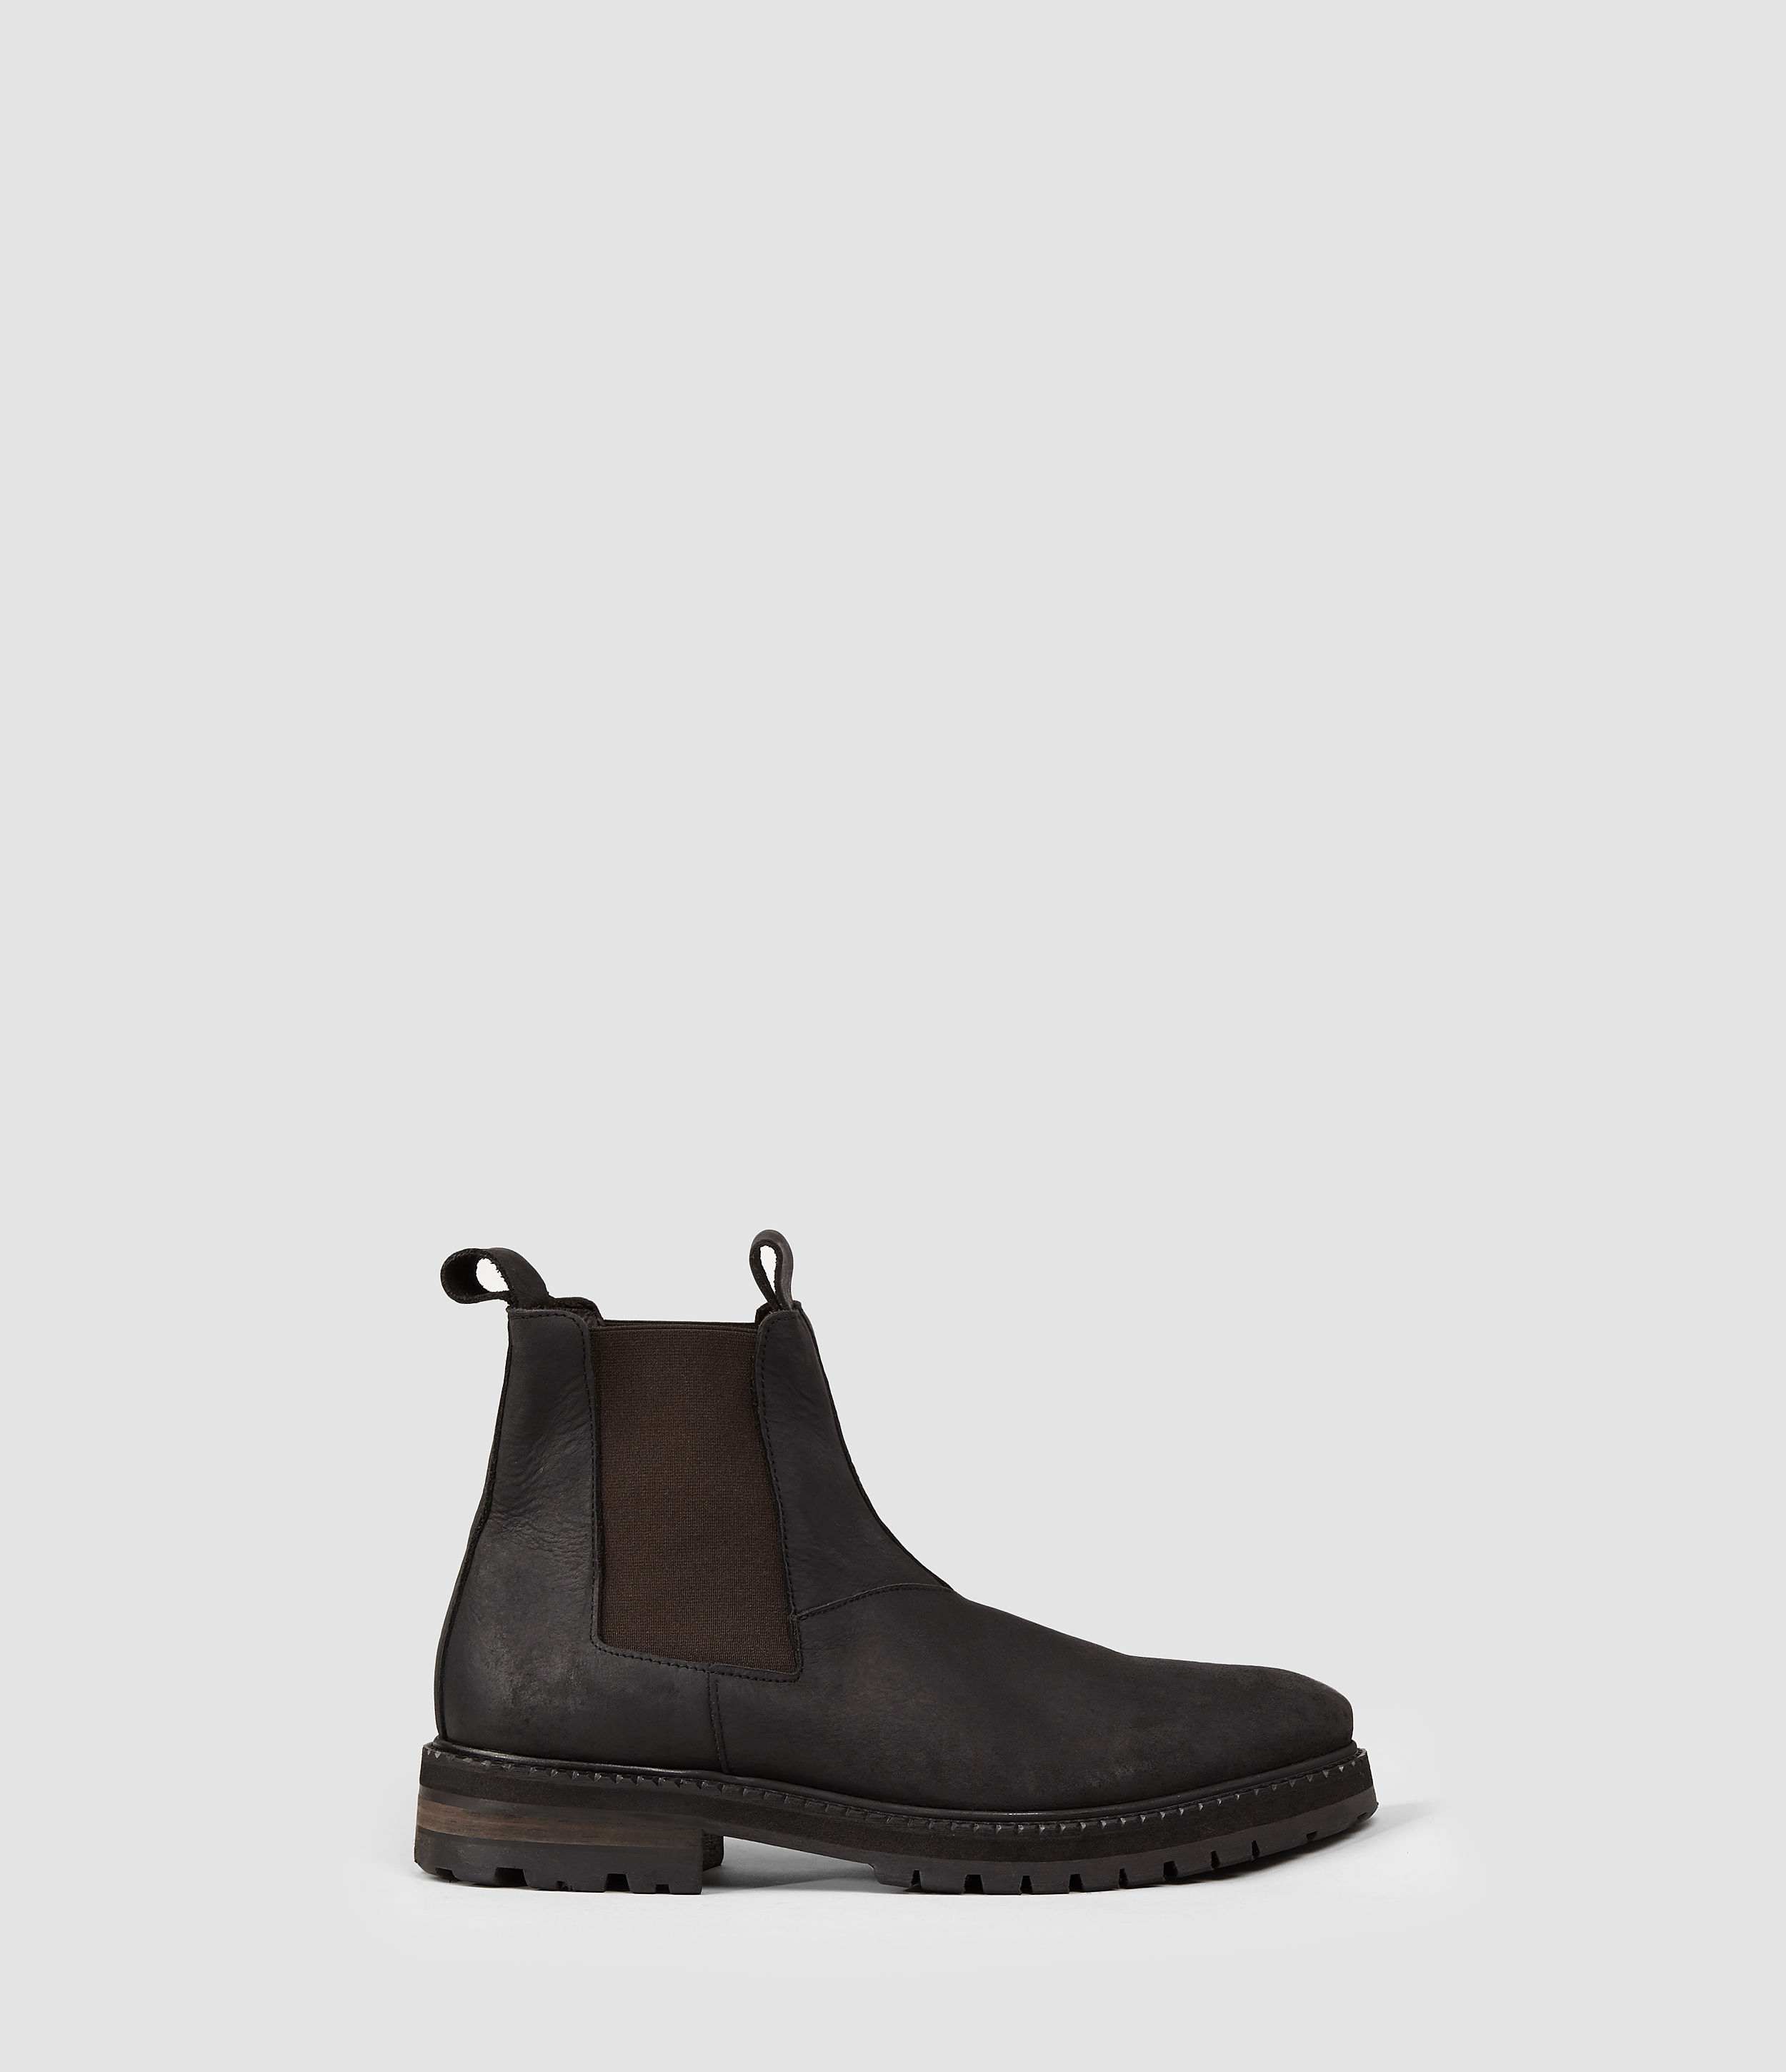 Allsaints Noble Boot in Black for Men